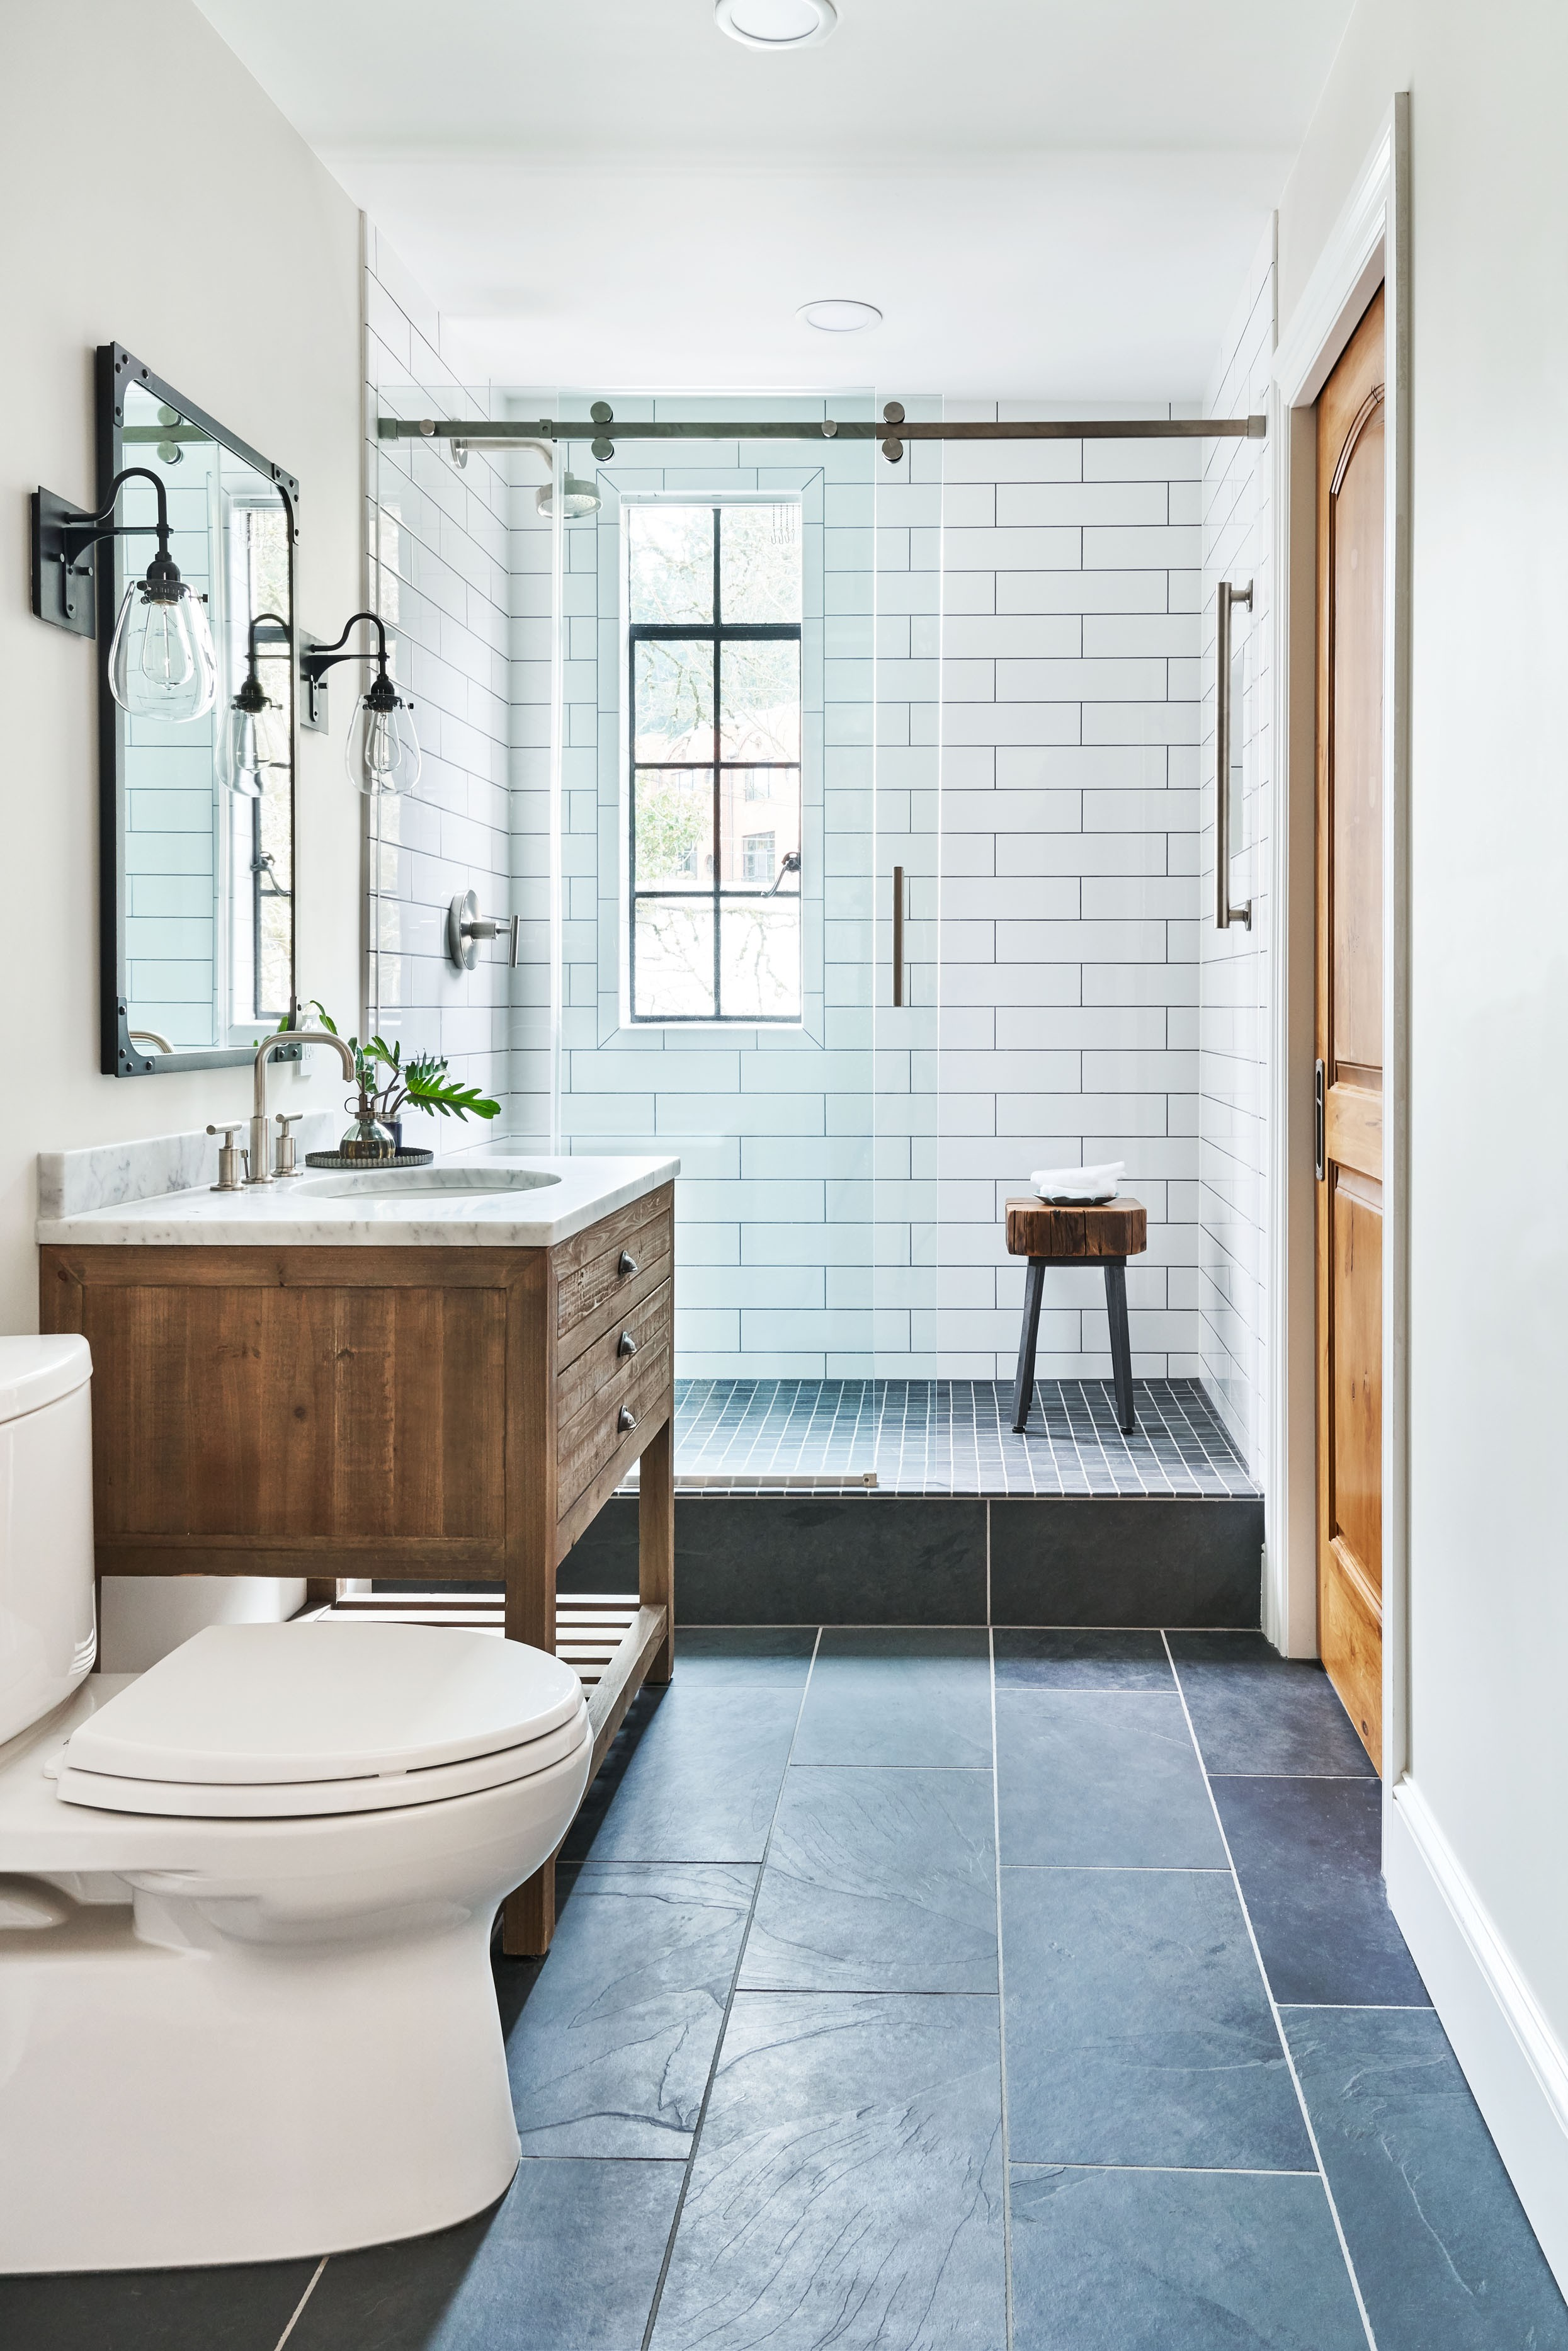 75 Beautiful Small Bathroom Pictures & Ideas | Houzz on western spa designs, western yard designs, western living room designs, western driveway entrance designs, western pool designs, western office designs, western kitchen cabinets, western master bedroom decorating ideas, western wet bar designs, western patio designs, western master bath, western landscaping designs, western kitchen designs, western porch designs, western bathroom vanities, western floor plan designs, western fireplace designs, western bedroom designs, western master bedroom furniture, western recreation room designs,